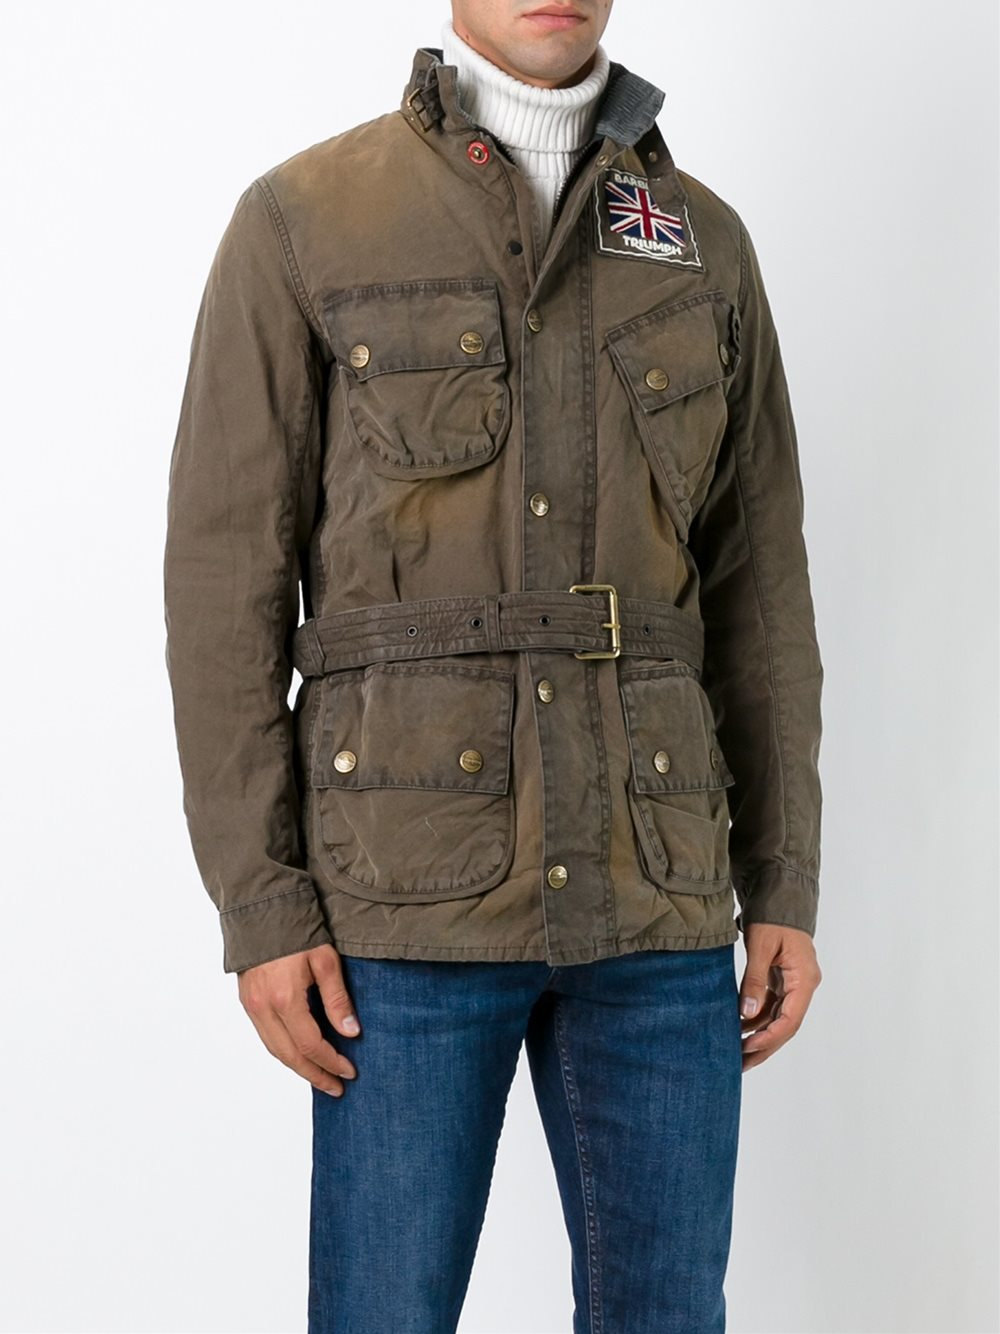 When you're on a mission to look casual, cool, and current, choose this belted military jacket. Page /5.